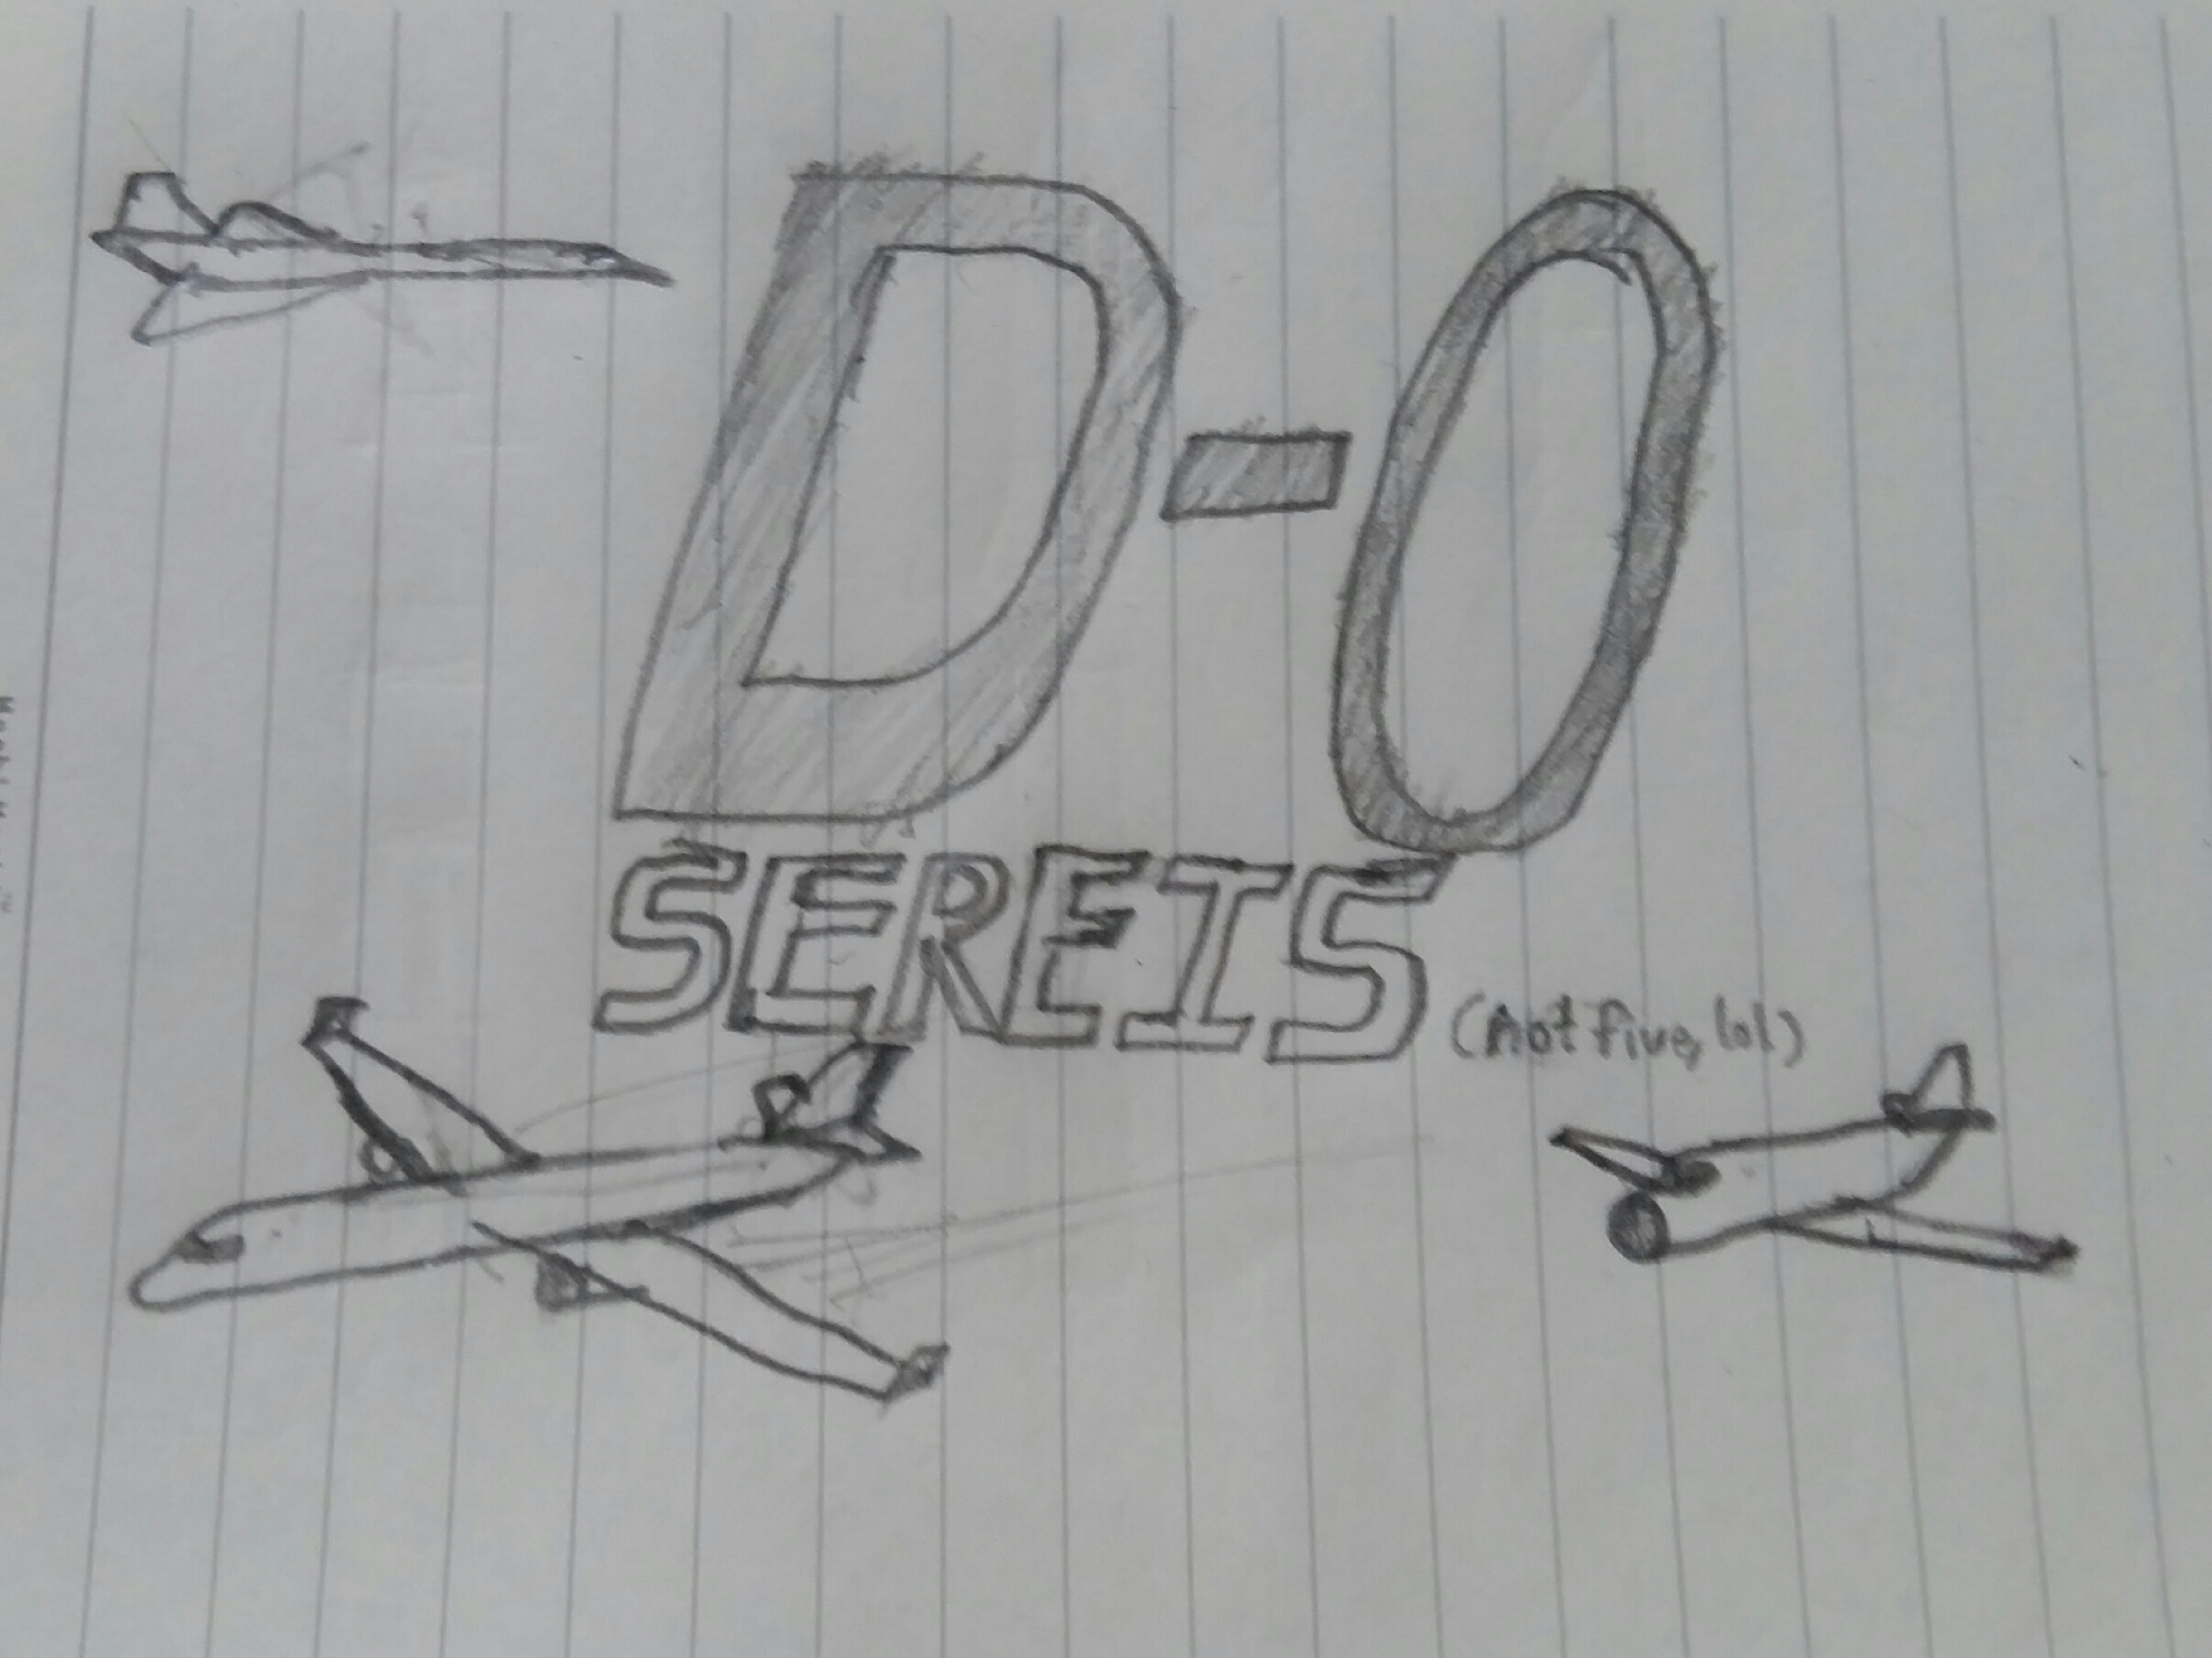 D-0 Series logo and D-0 Series planes